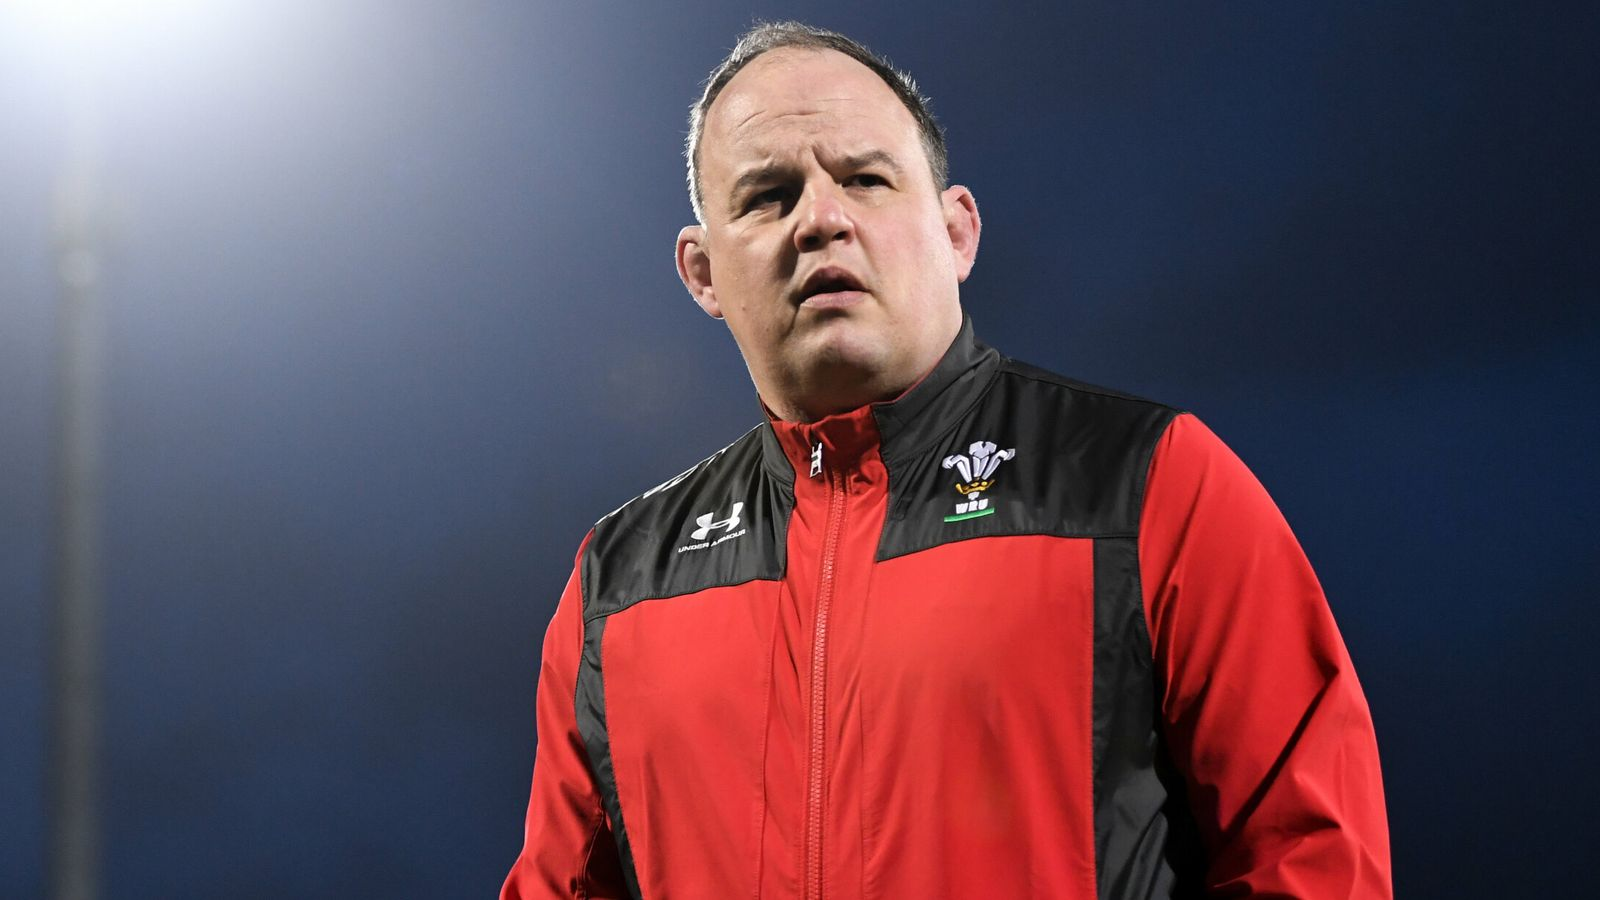 Gareth Williams joins Wayne Pivac's Wales coaching staff on full-time basis after successful Six Nations